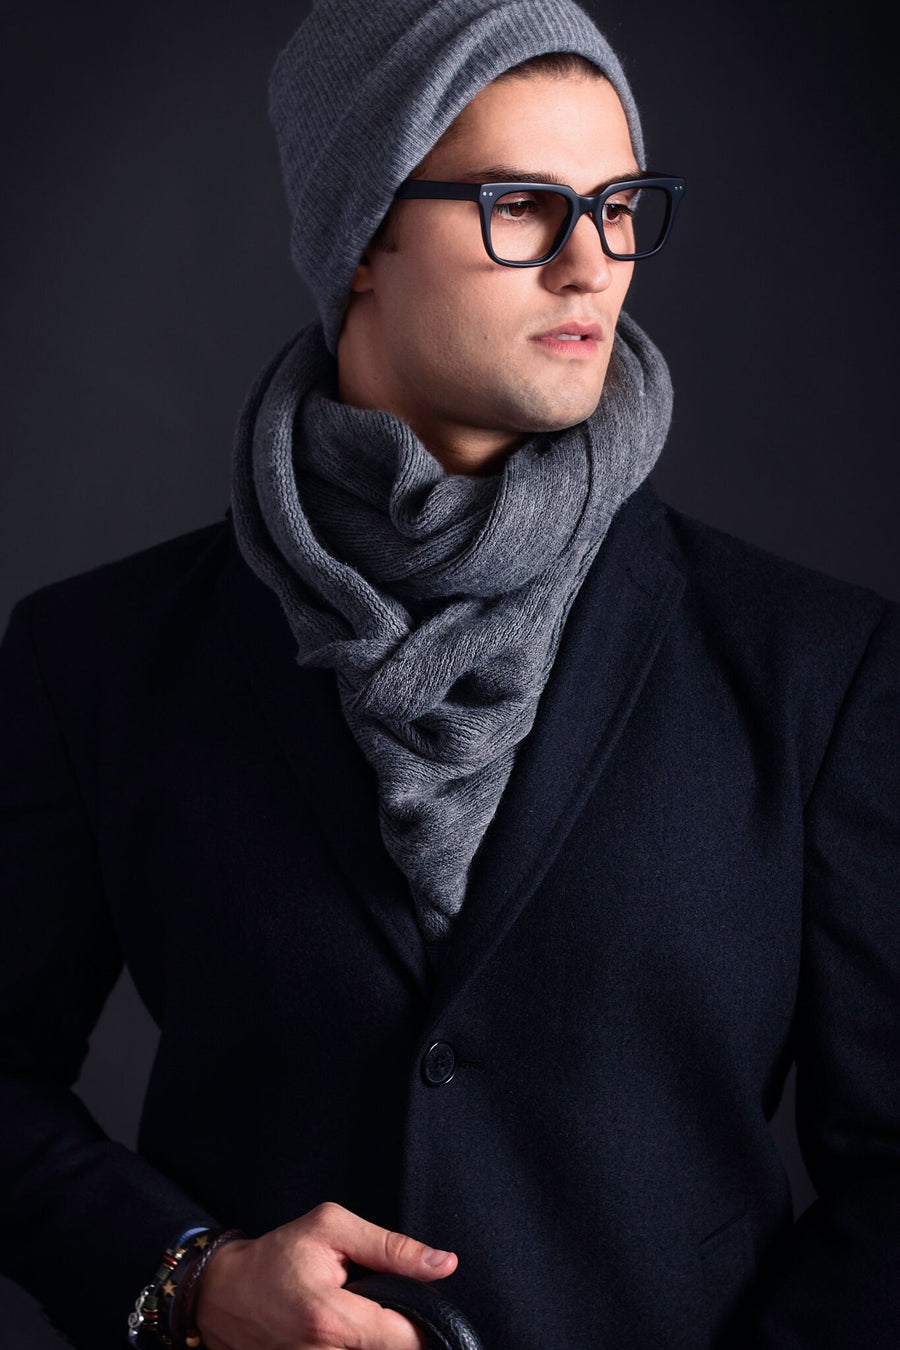 James Derby Italia Scarf in Black / Brown - Ron Bennett Menswear  - 1